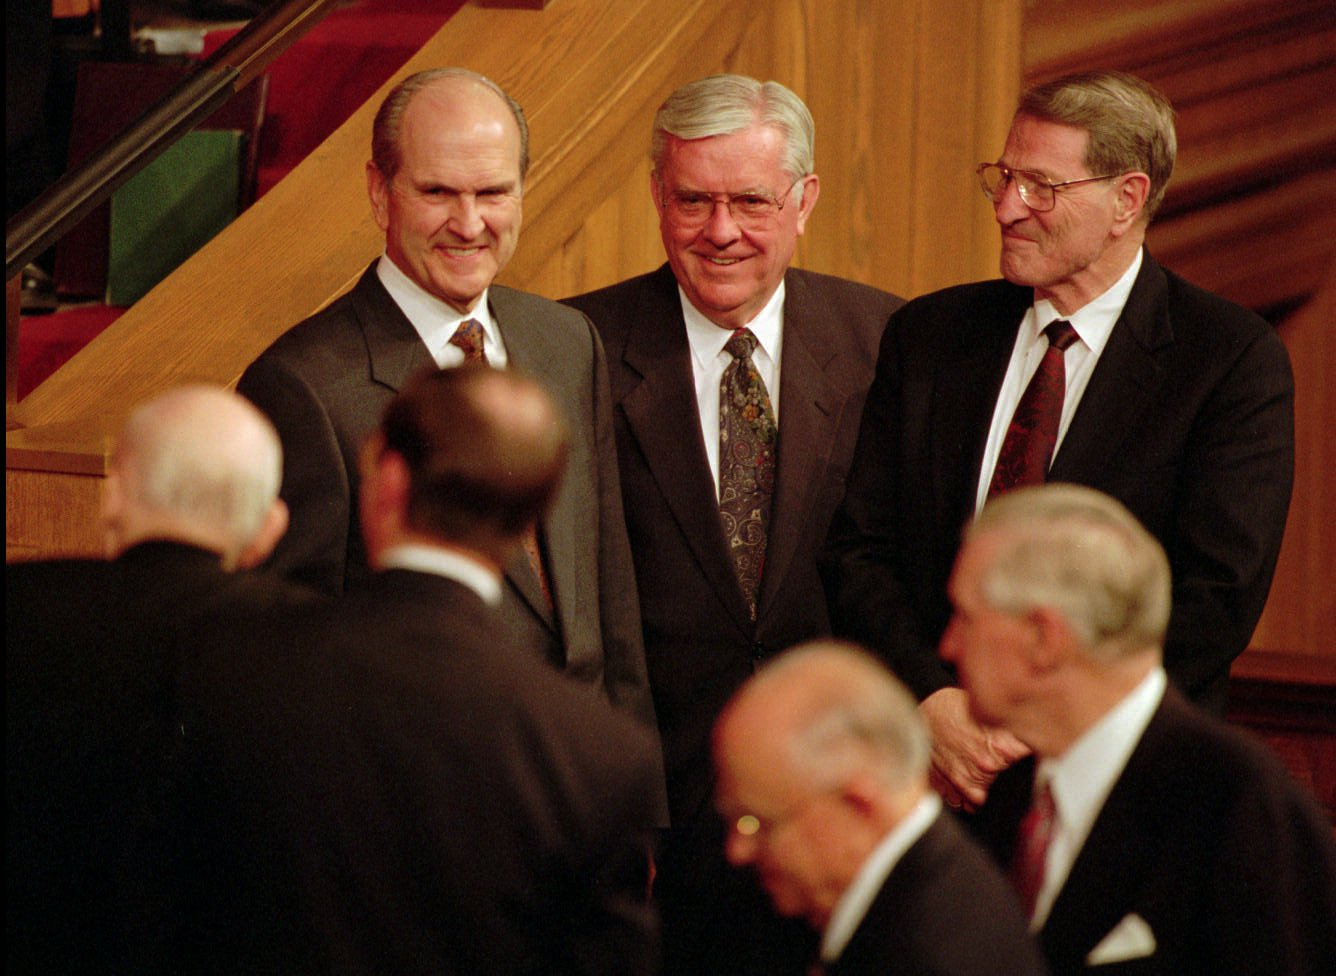 Elder Russell M. Nelson, Elder M. Russell Ballard and Elder Neal A. Maxwell, all of the Quorum of the Twelve Apostles, watch with smiling faces as President Howard W. Hunter makes his way out at the end of conference.